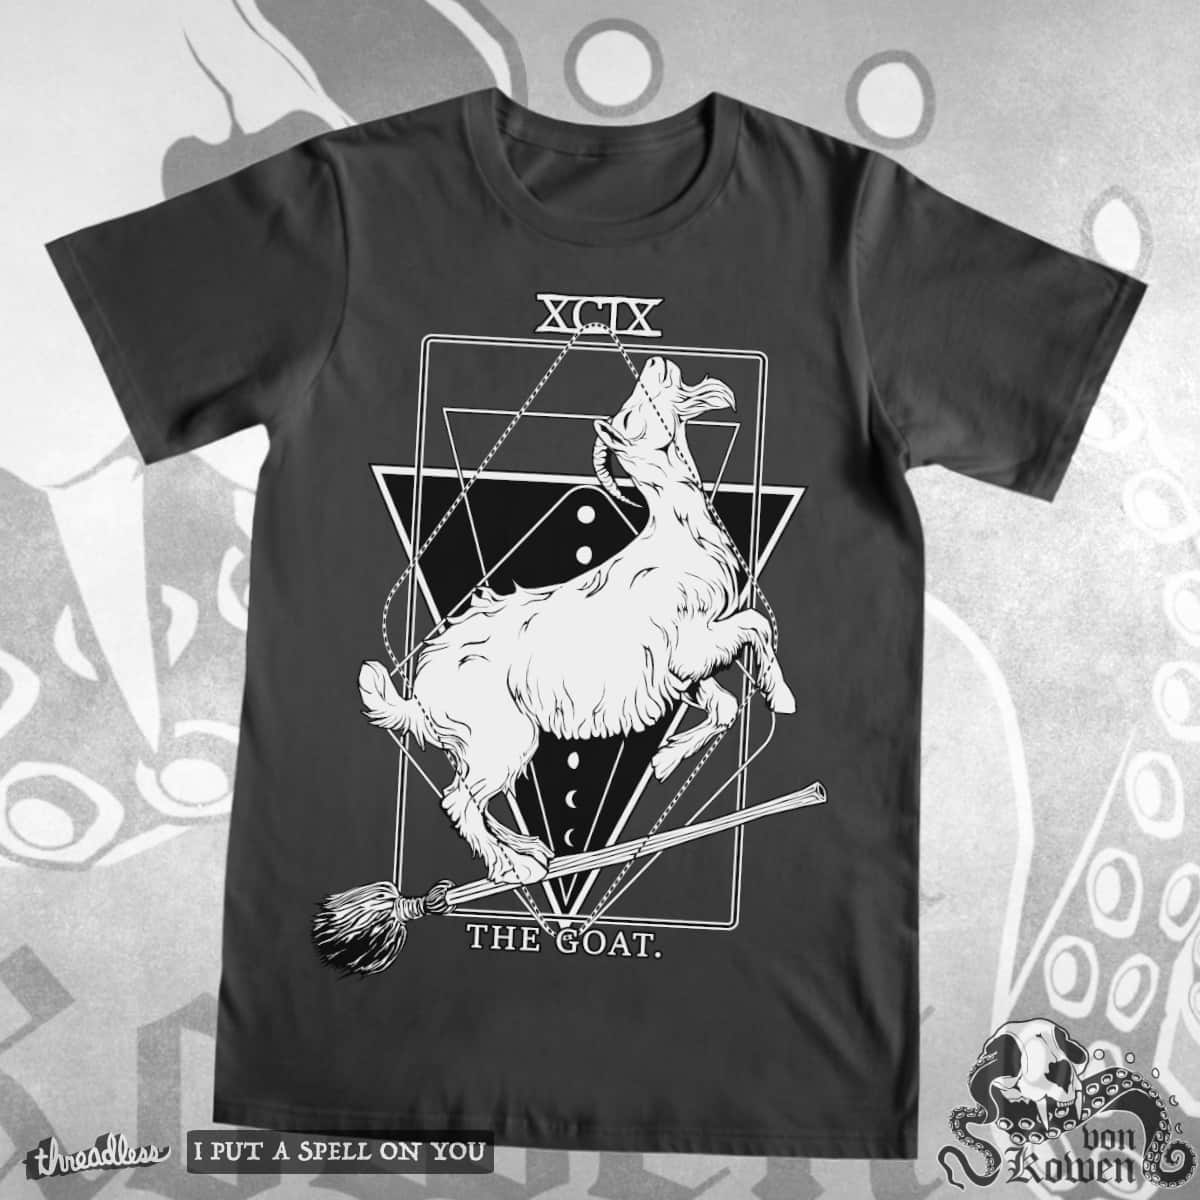 The Goat (on witches broom) by vonKowen on Threadless